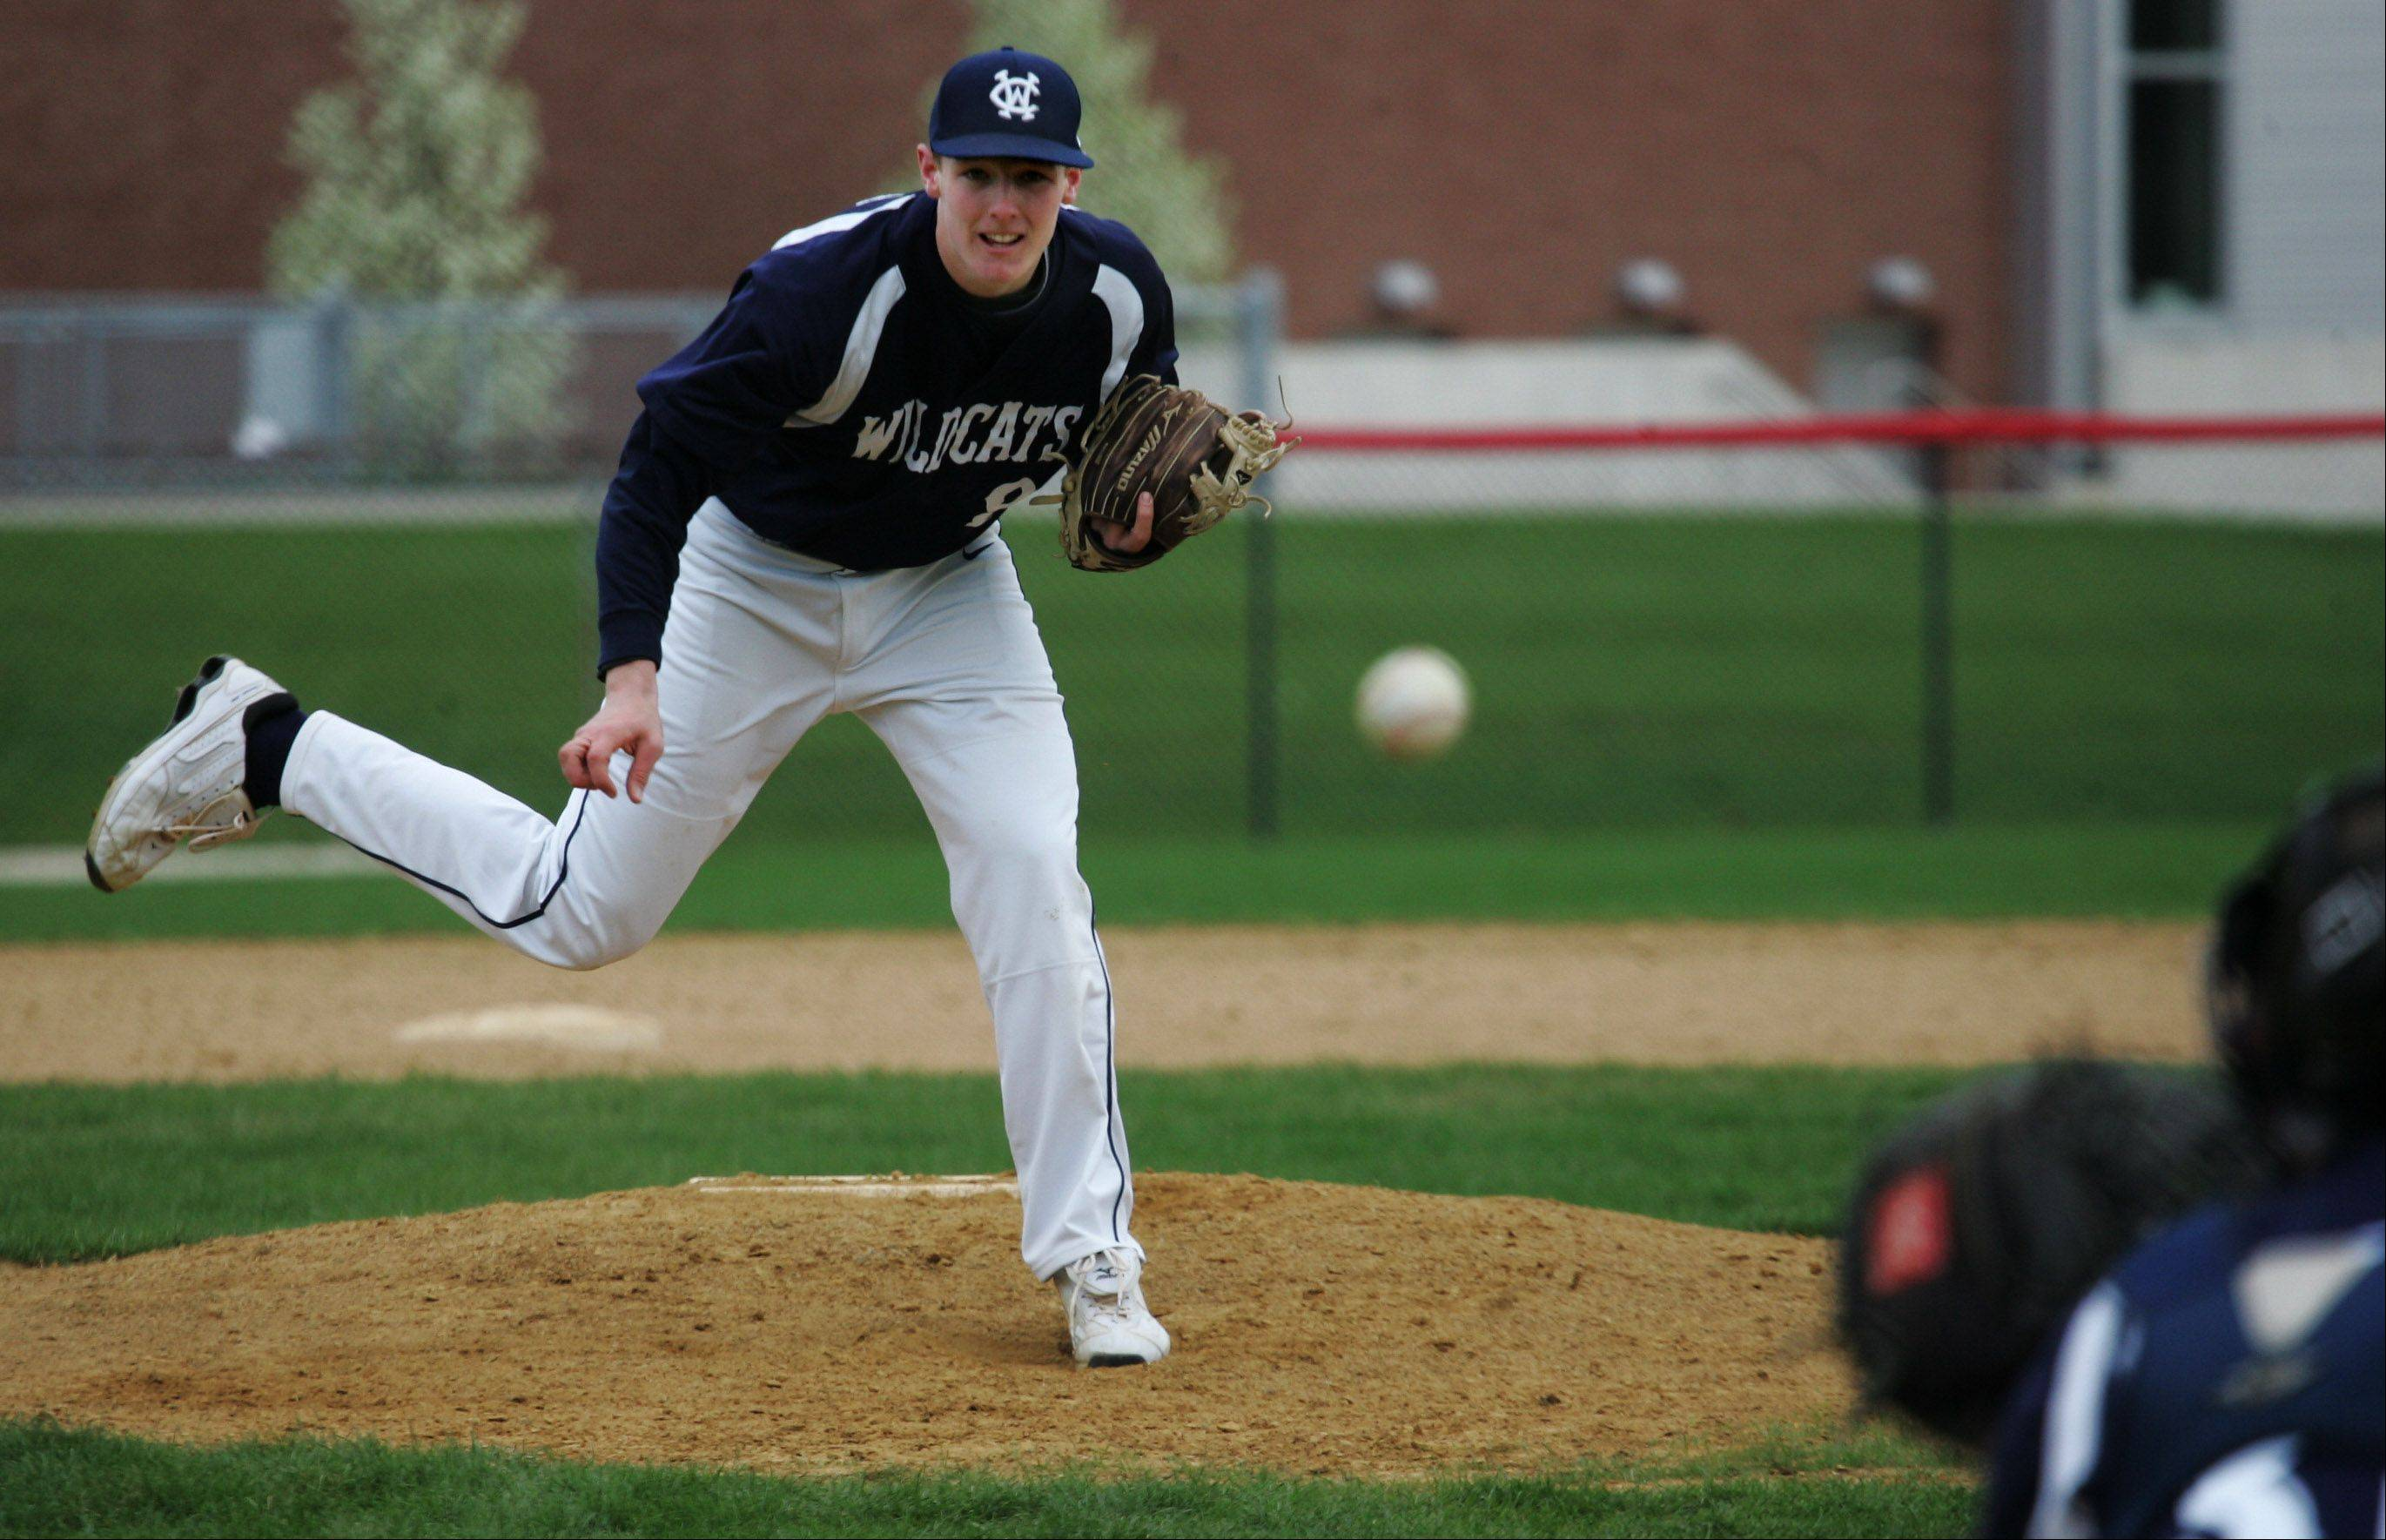 West Chicago pitcher Josh Gimre delivers against host Grant on Tuesday.